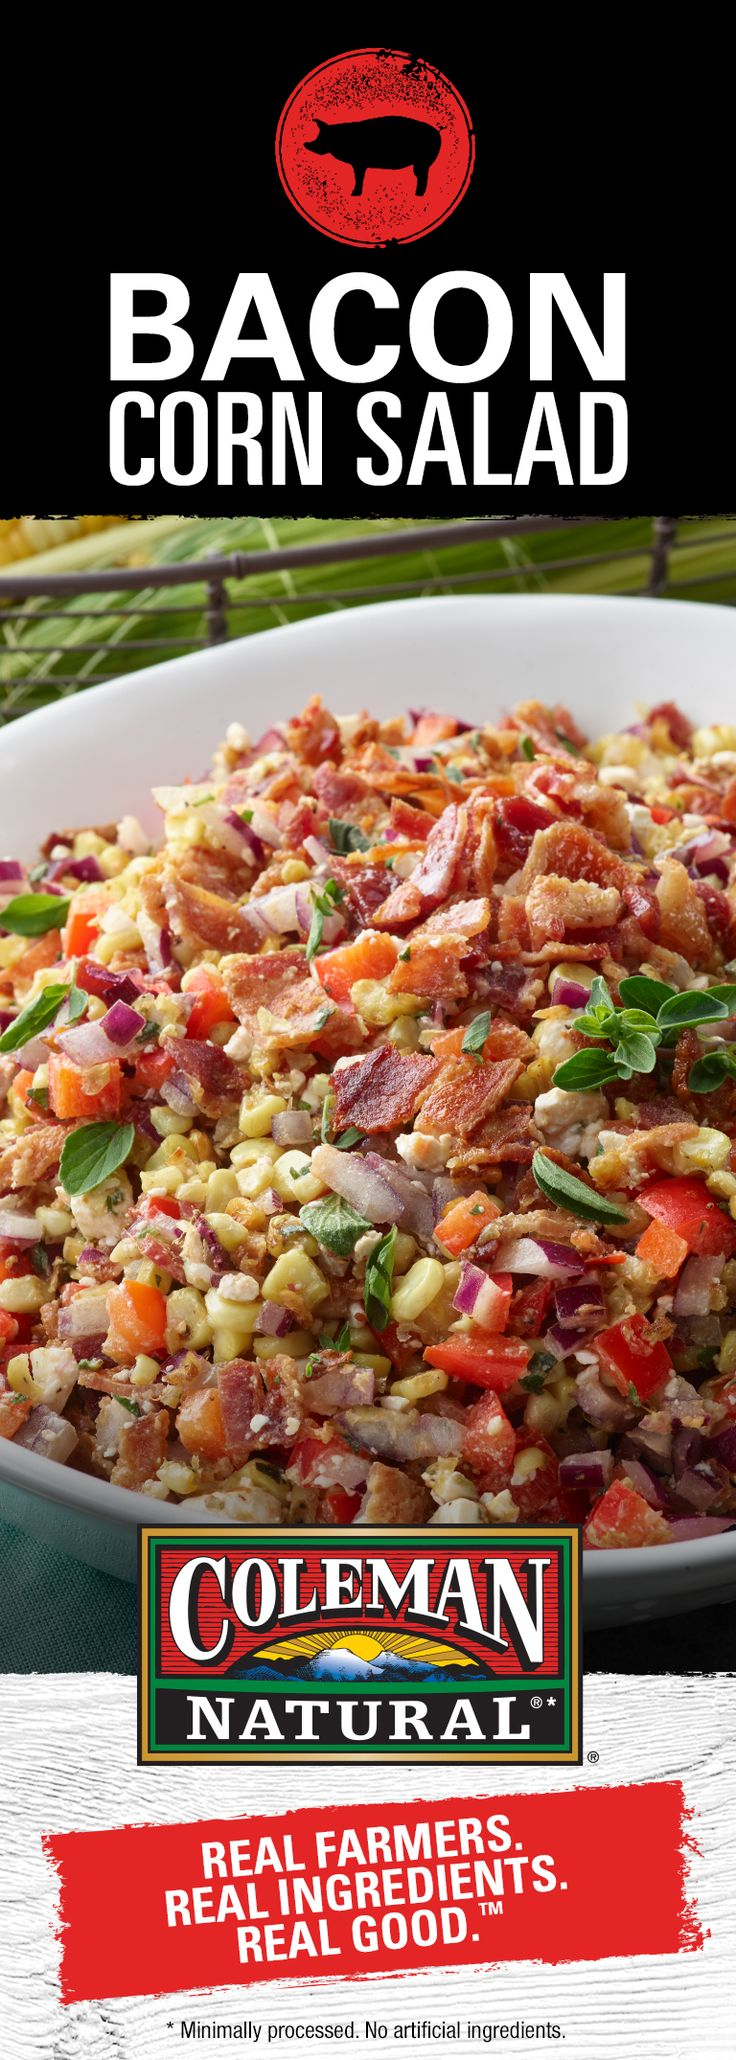 A delicious twist on salad, topped with our delicious Applewood Uncured Bacon - YUMMY!